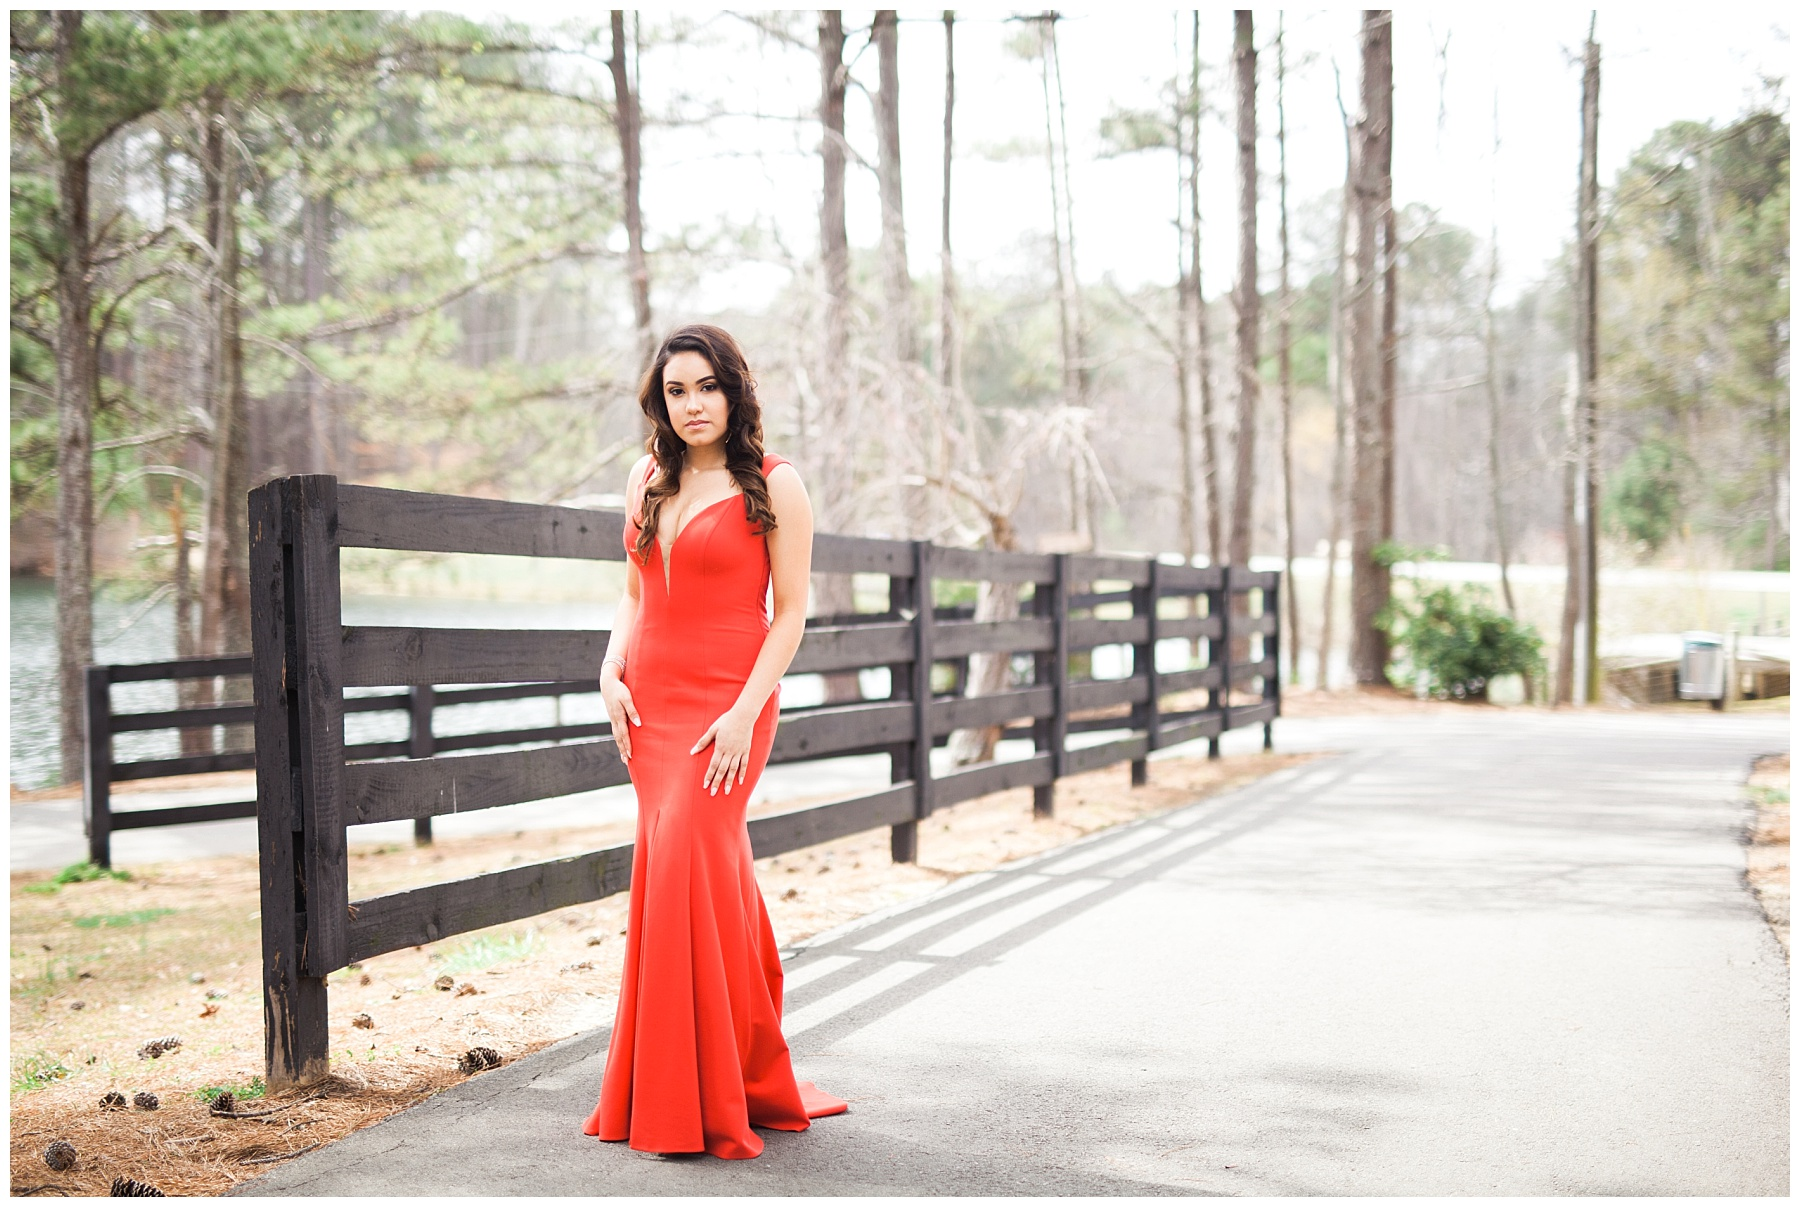 prod red dress outdoors park shoot